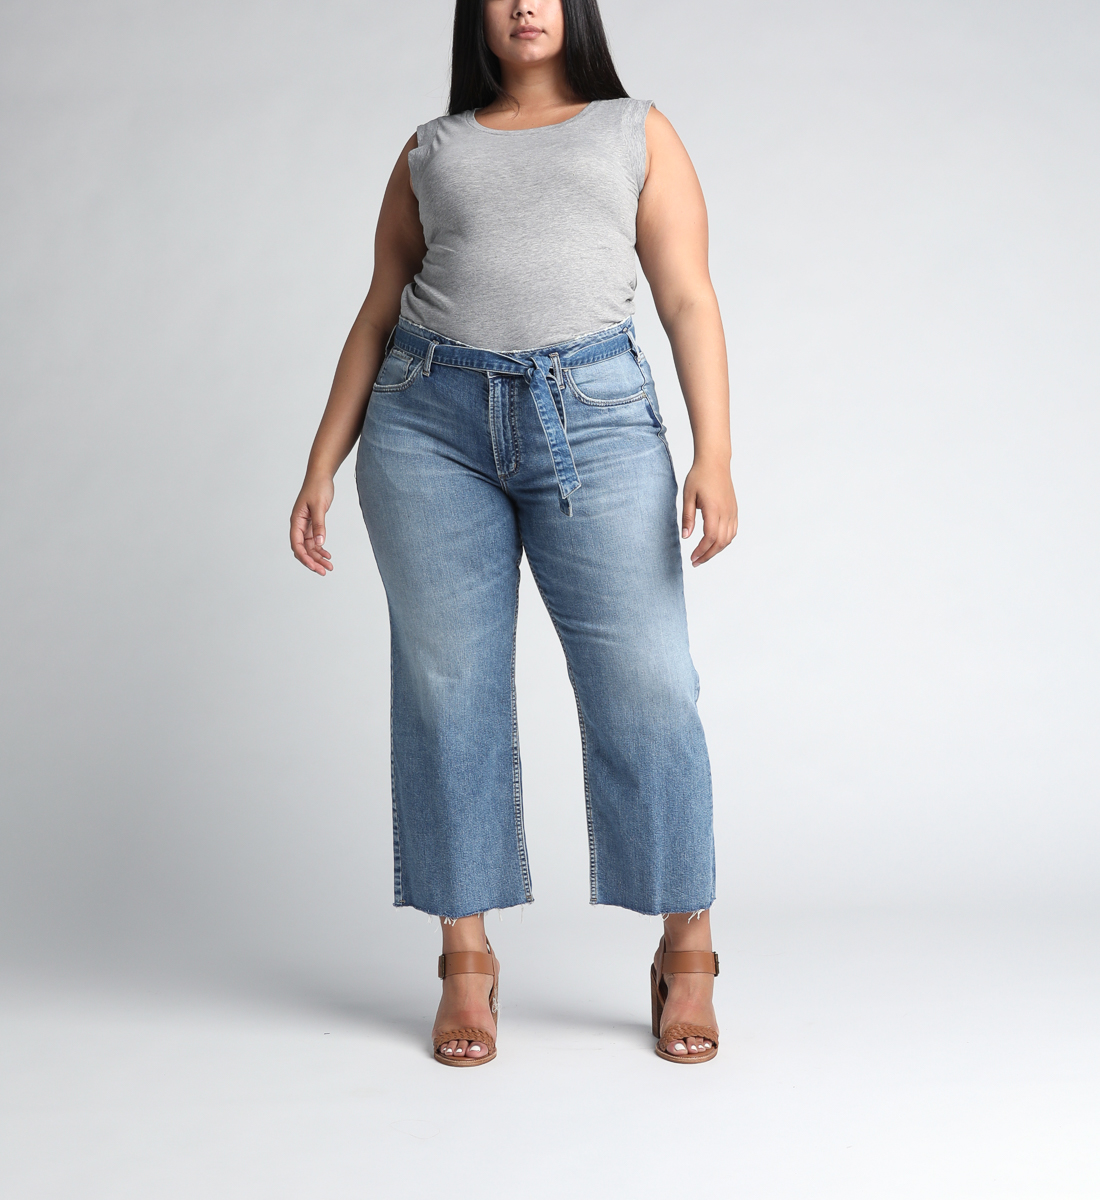 Tied and Wide High Rise Wide Leg Jeans Plus Size, , hi-res